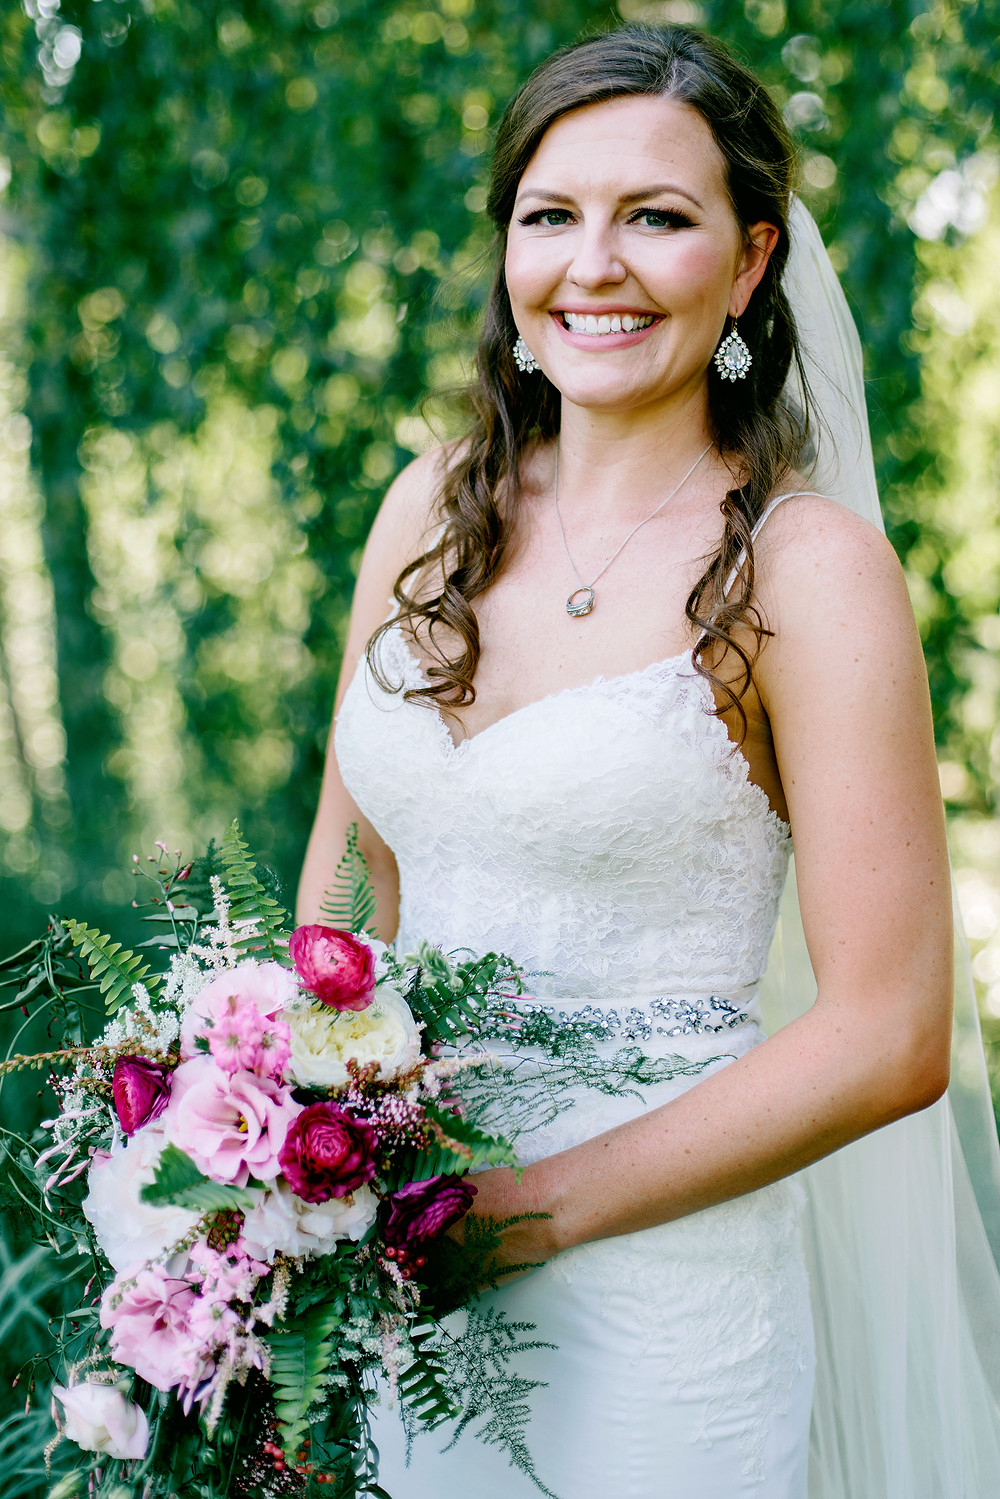 Looking for a Florist for Wedding at the Denver Botanic Gardens?